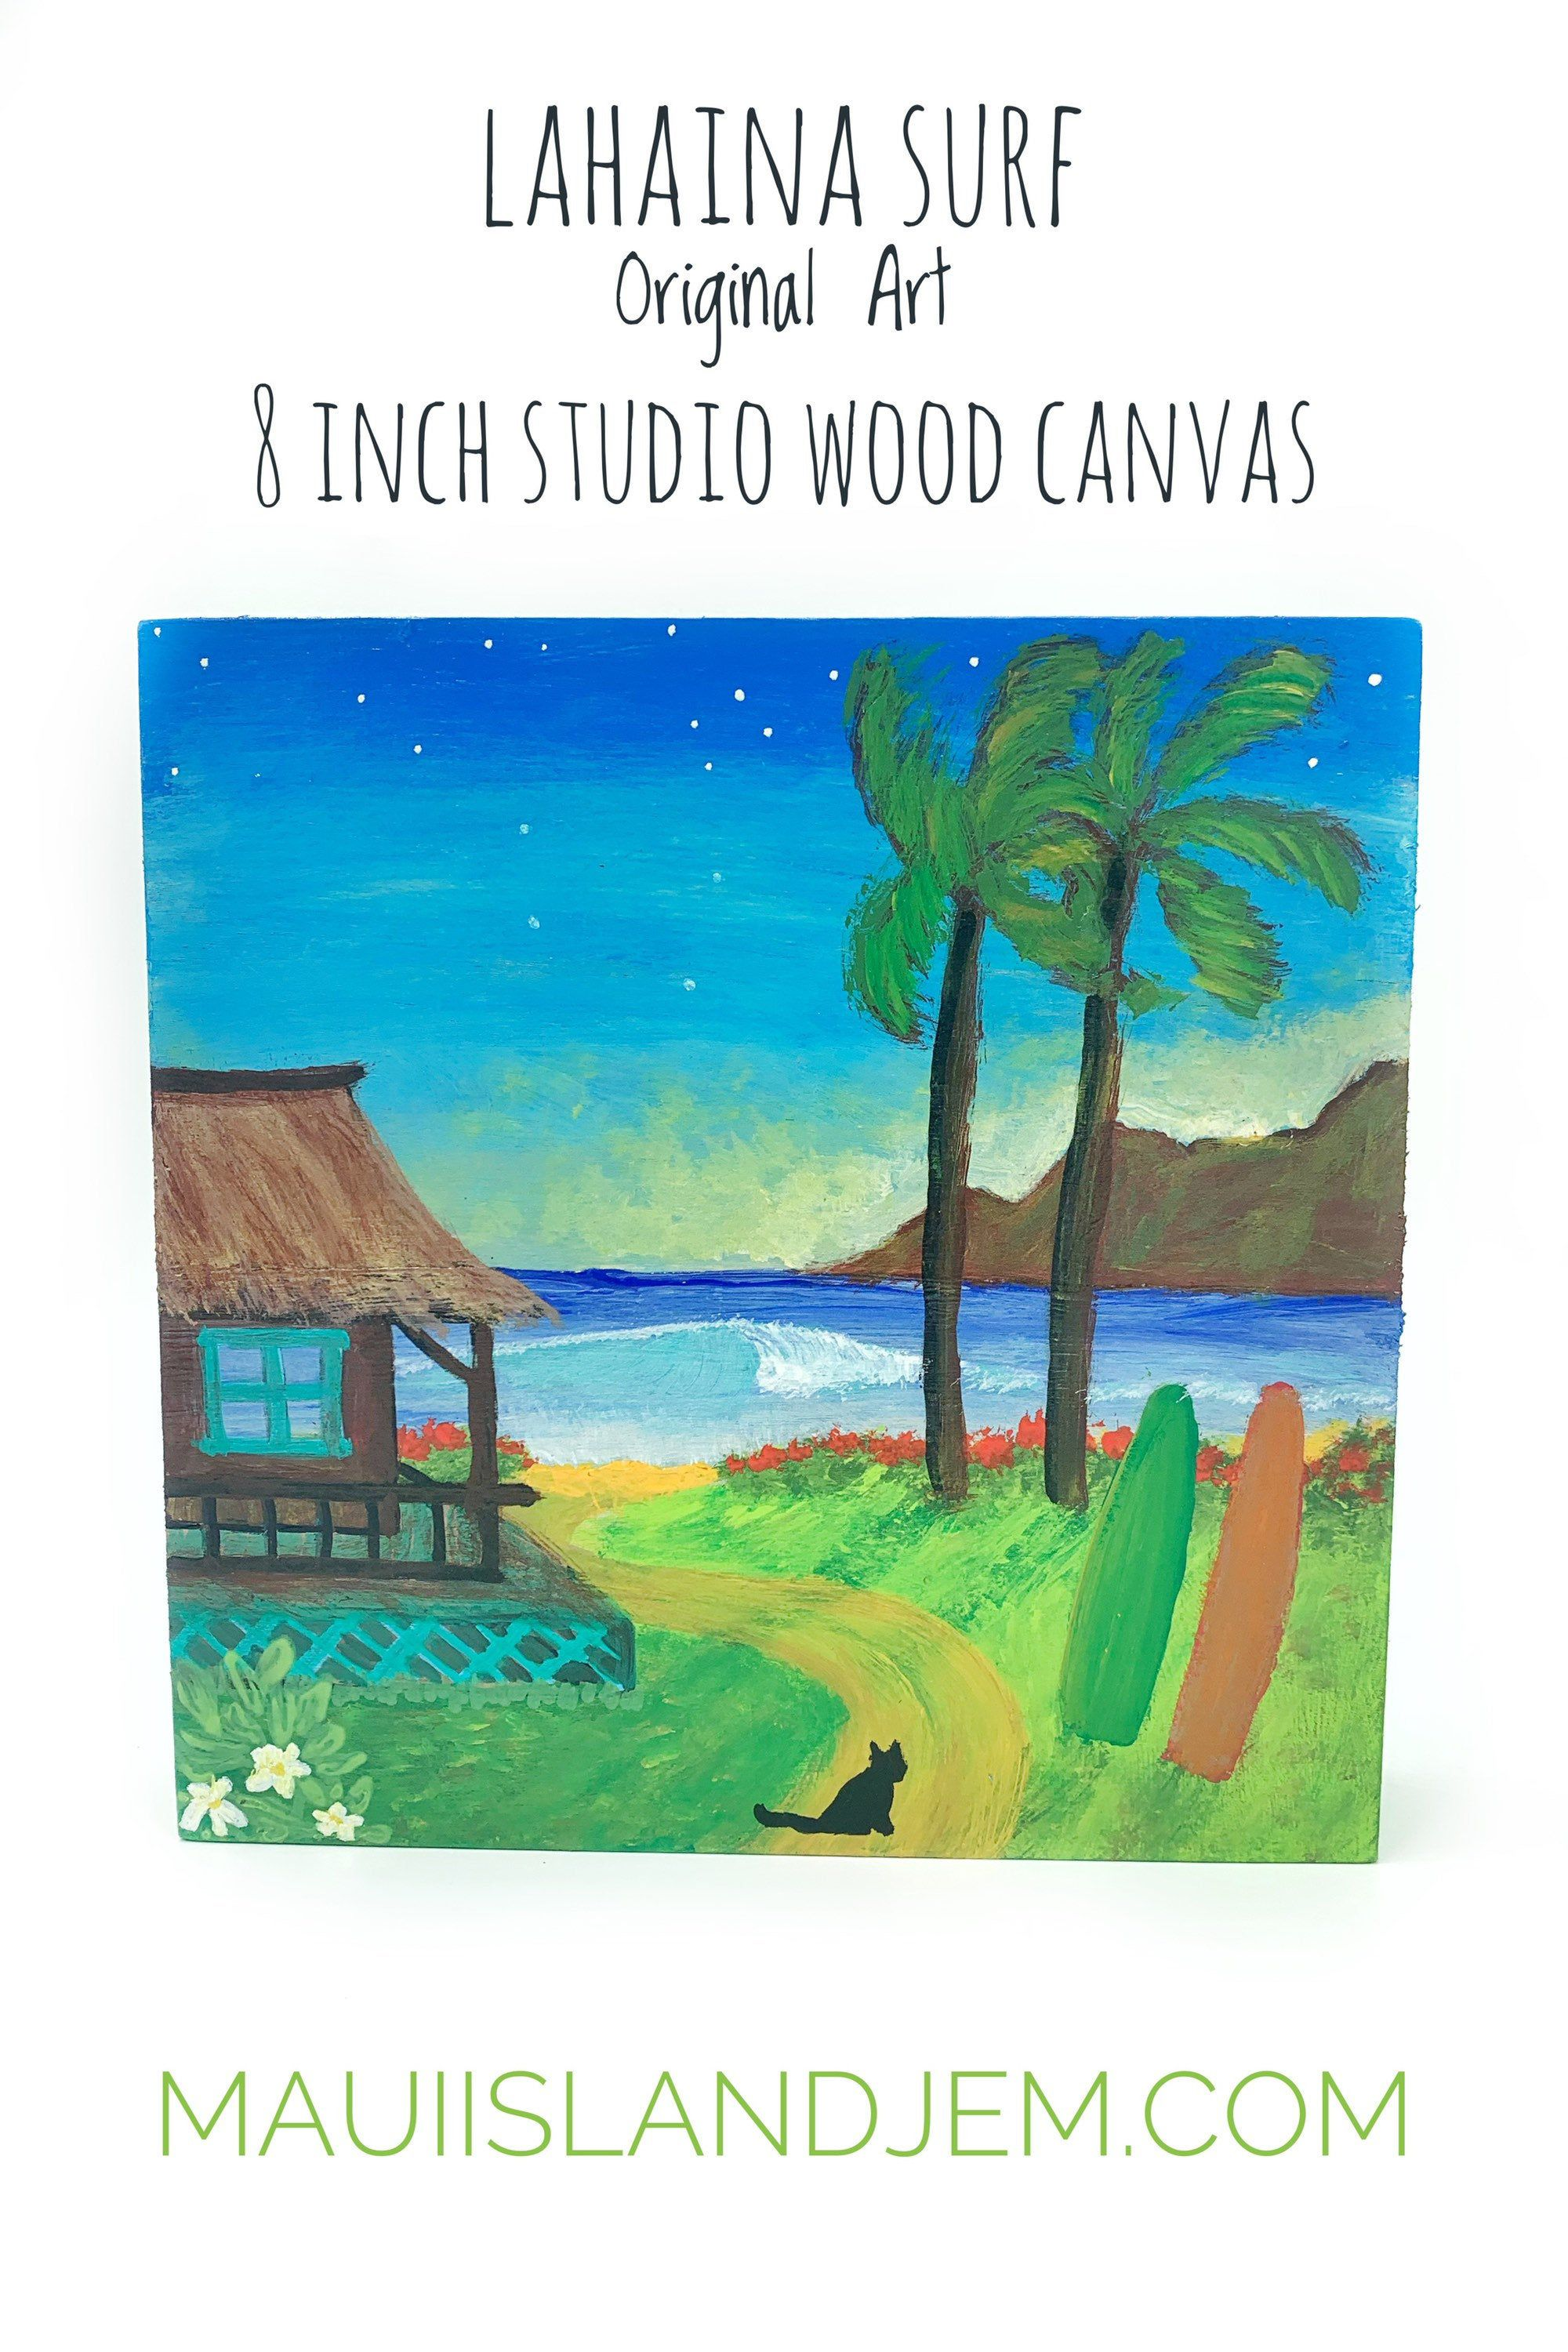 Island Life Wall Art Maui Original Painting Surf Art Maui Scenic West Side Acrylic Painting On 8 X 8 Wood Canvas Ready To Hang In 2020 Surf Art Wood Canvas Original Paintings